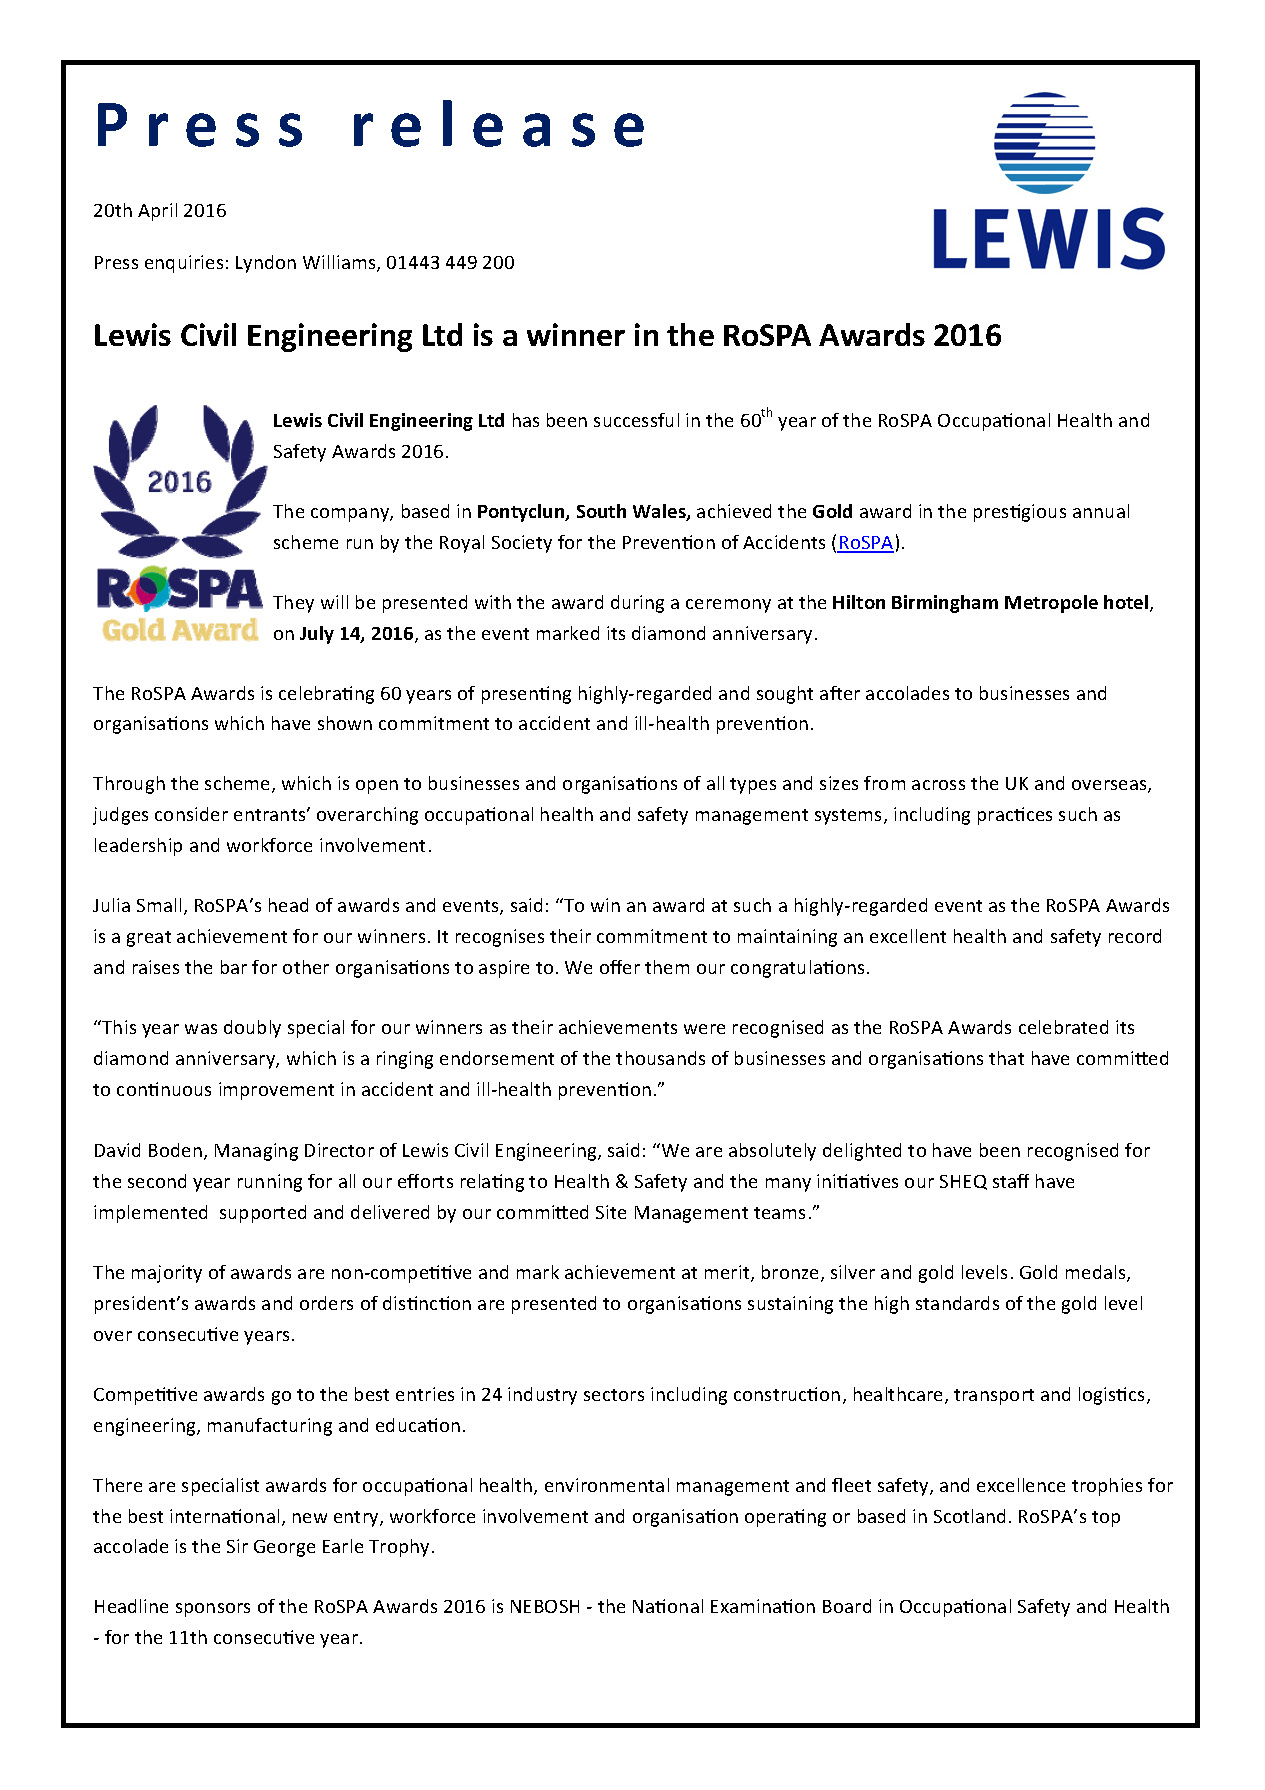 Lewis Civil Engineering Ltd is a winner in the RoSPA Awards 2016